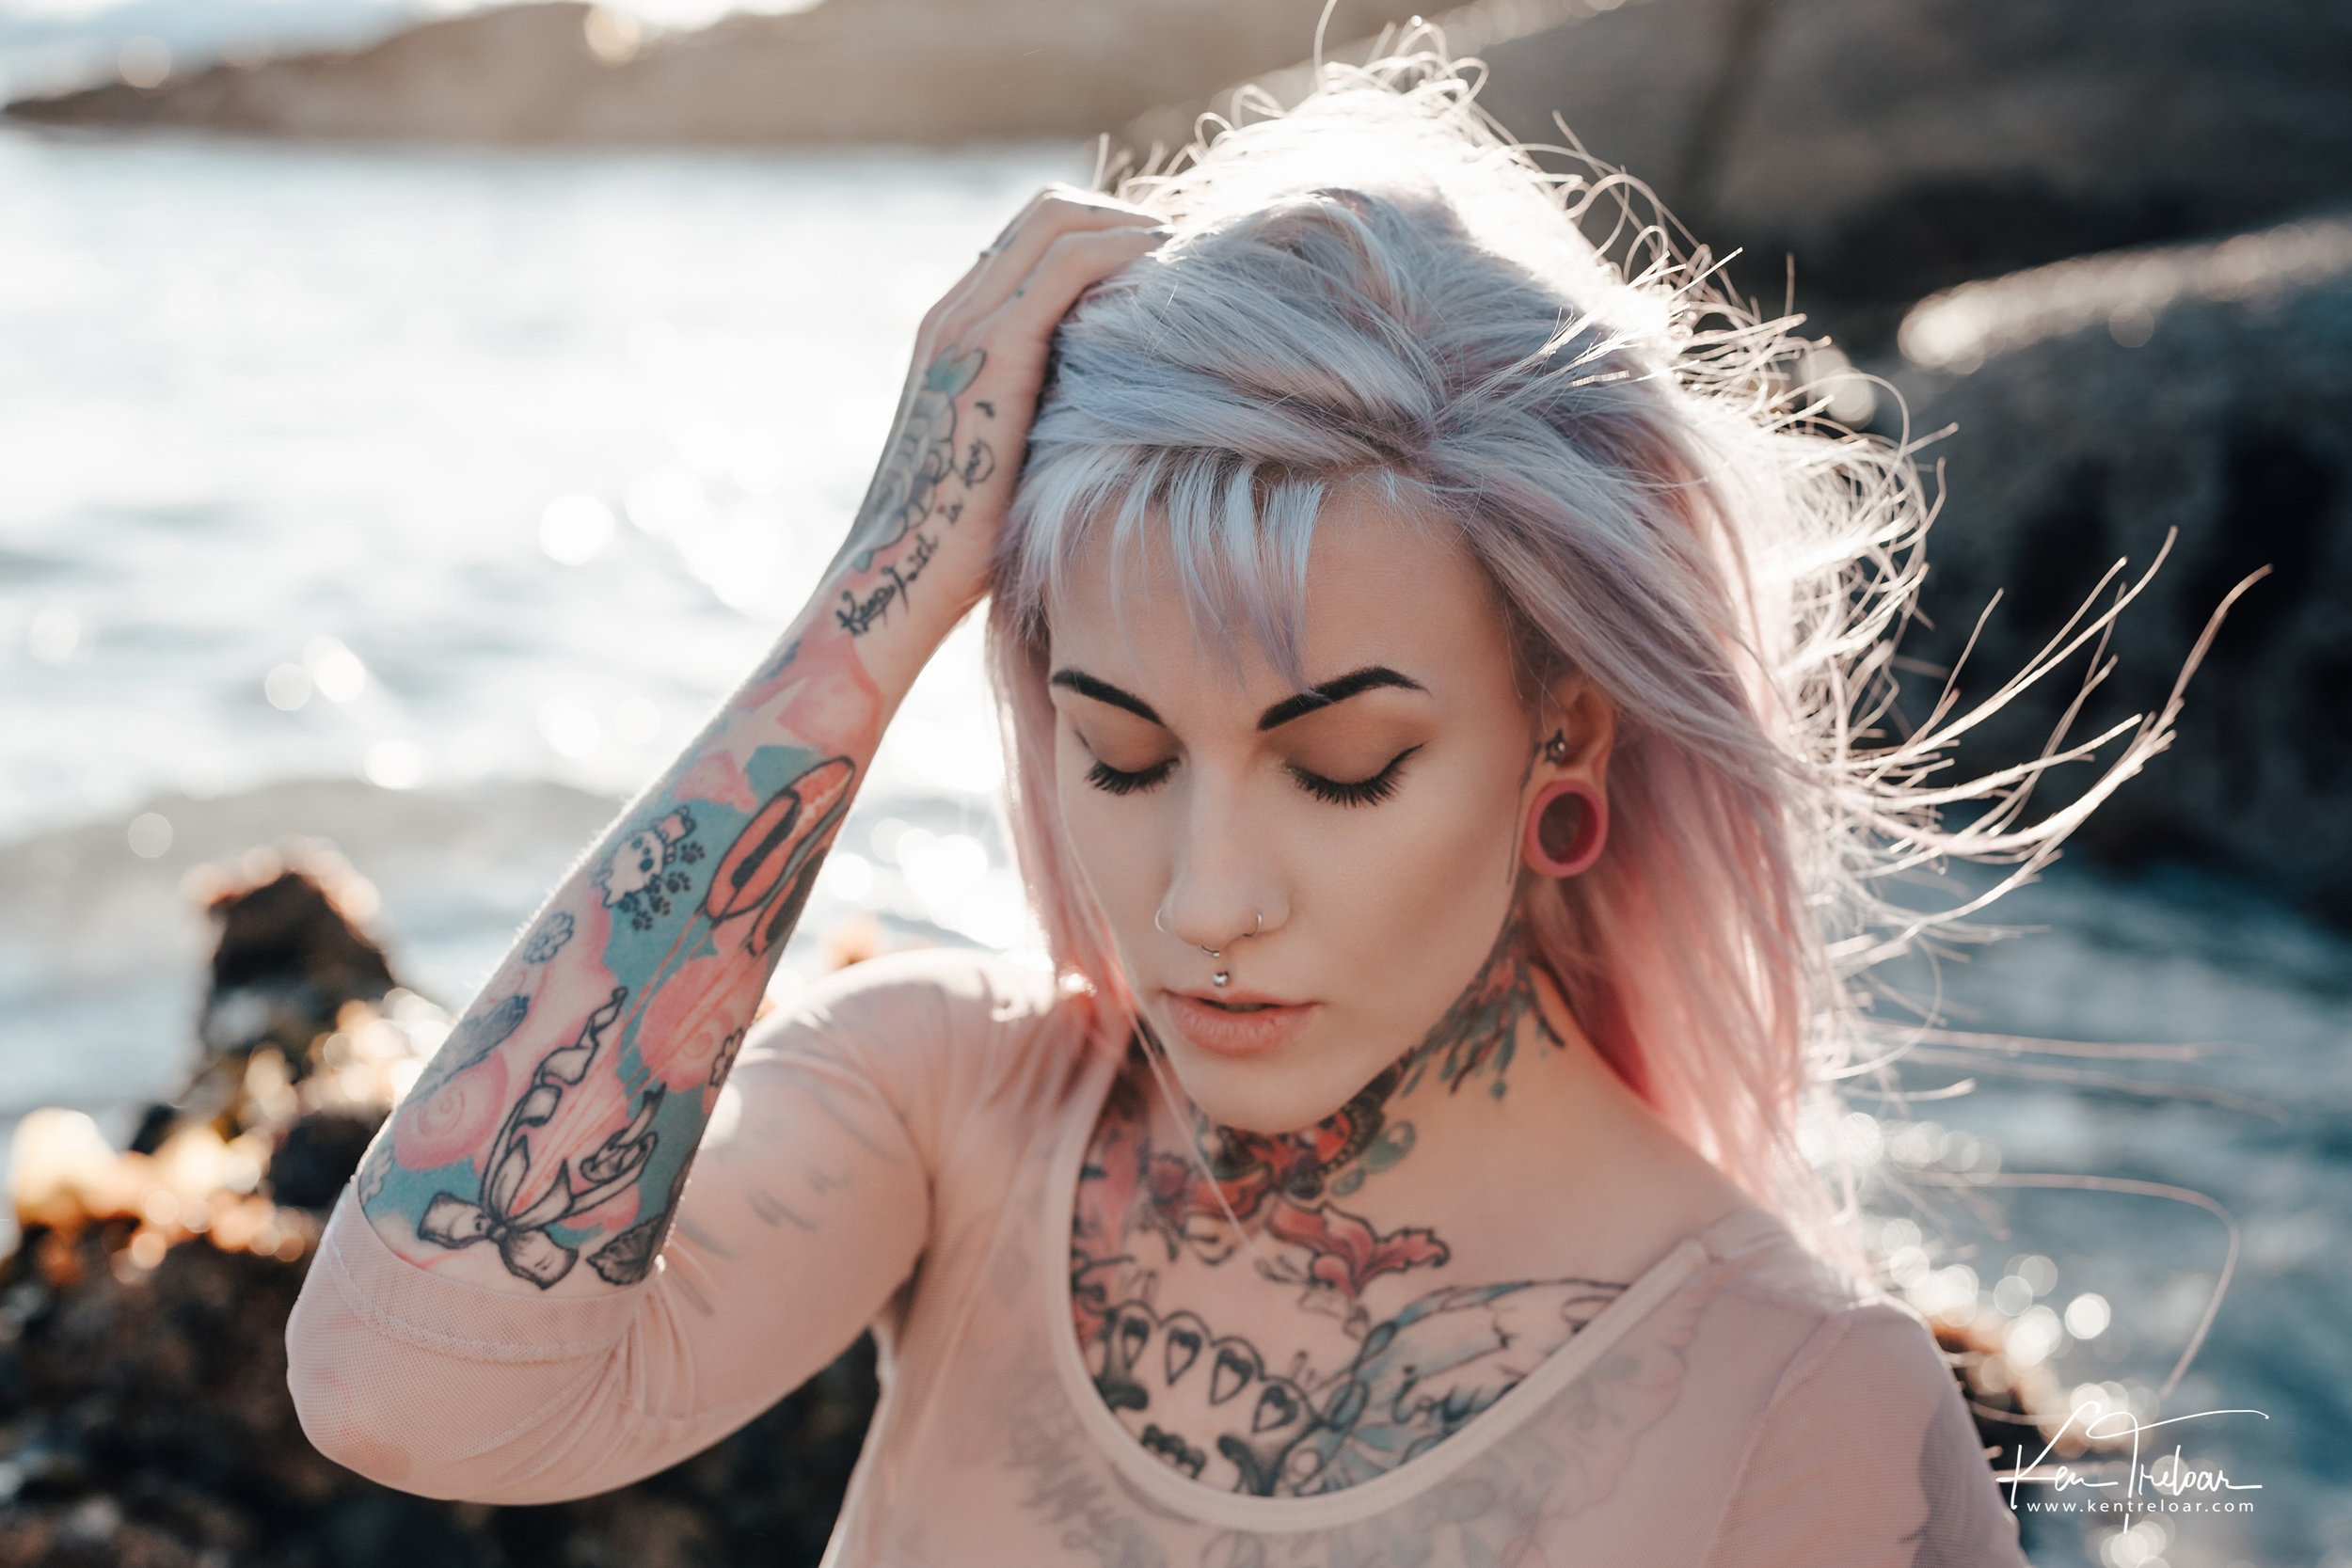 1_Christine Van Ink - Kief Modils - Cape Town LLandudno - Portrait session - by Ken Treloar Photography (sml)-11.jpg